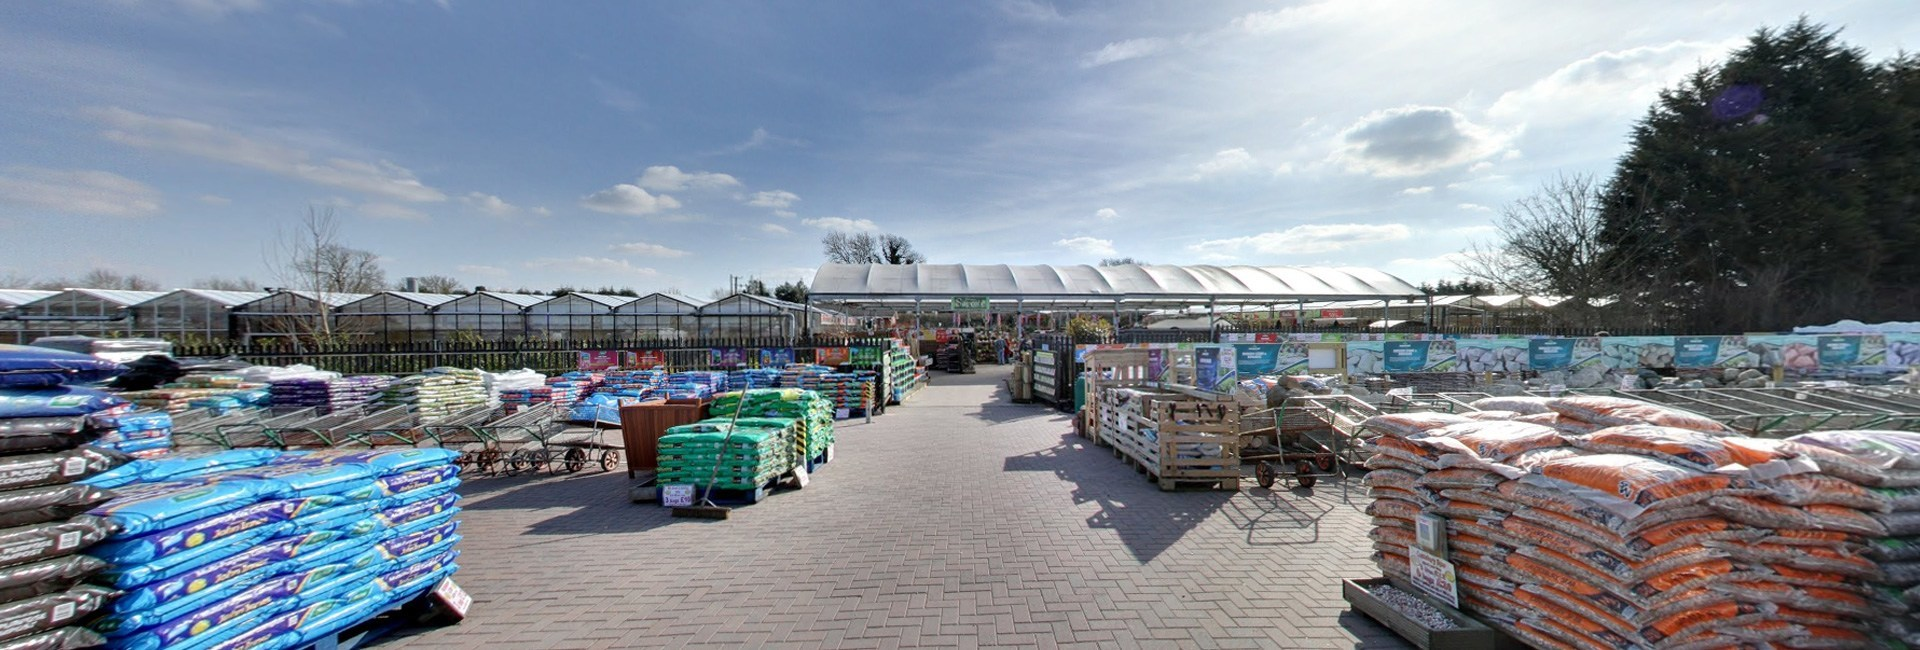 Sweet Sapcote Garden Centre Leicester  Try Our New Cafe With Luxury Sapcote Garden Centre Entrance With Cute Mini Garden Fence Also Alameda Gardens In Addition Water Flow Meter Garden Hose And How To Put Up A Garden Fence As Well As Secret Garden Battersea Additionally Nearest Train Station To Covent Garden From Sapcotegccouk With   Luxury Sapcote Garden Centre Leicester  Try Our New Cafe With Cute Sapcote Garden Centre Entrance And Sweet Mini Garden Fence Also Alameda Gardens In Addition Water Flow Meter Garden Hose From Sapcotegccouk